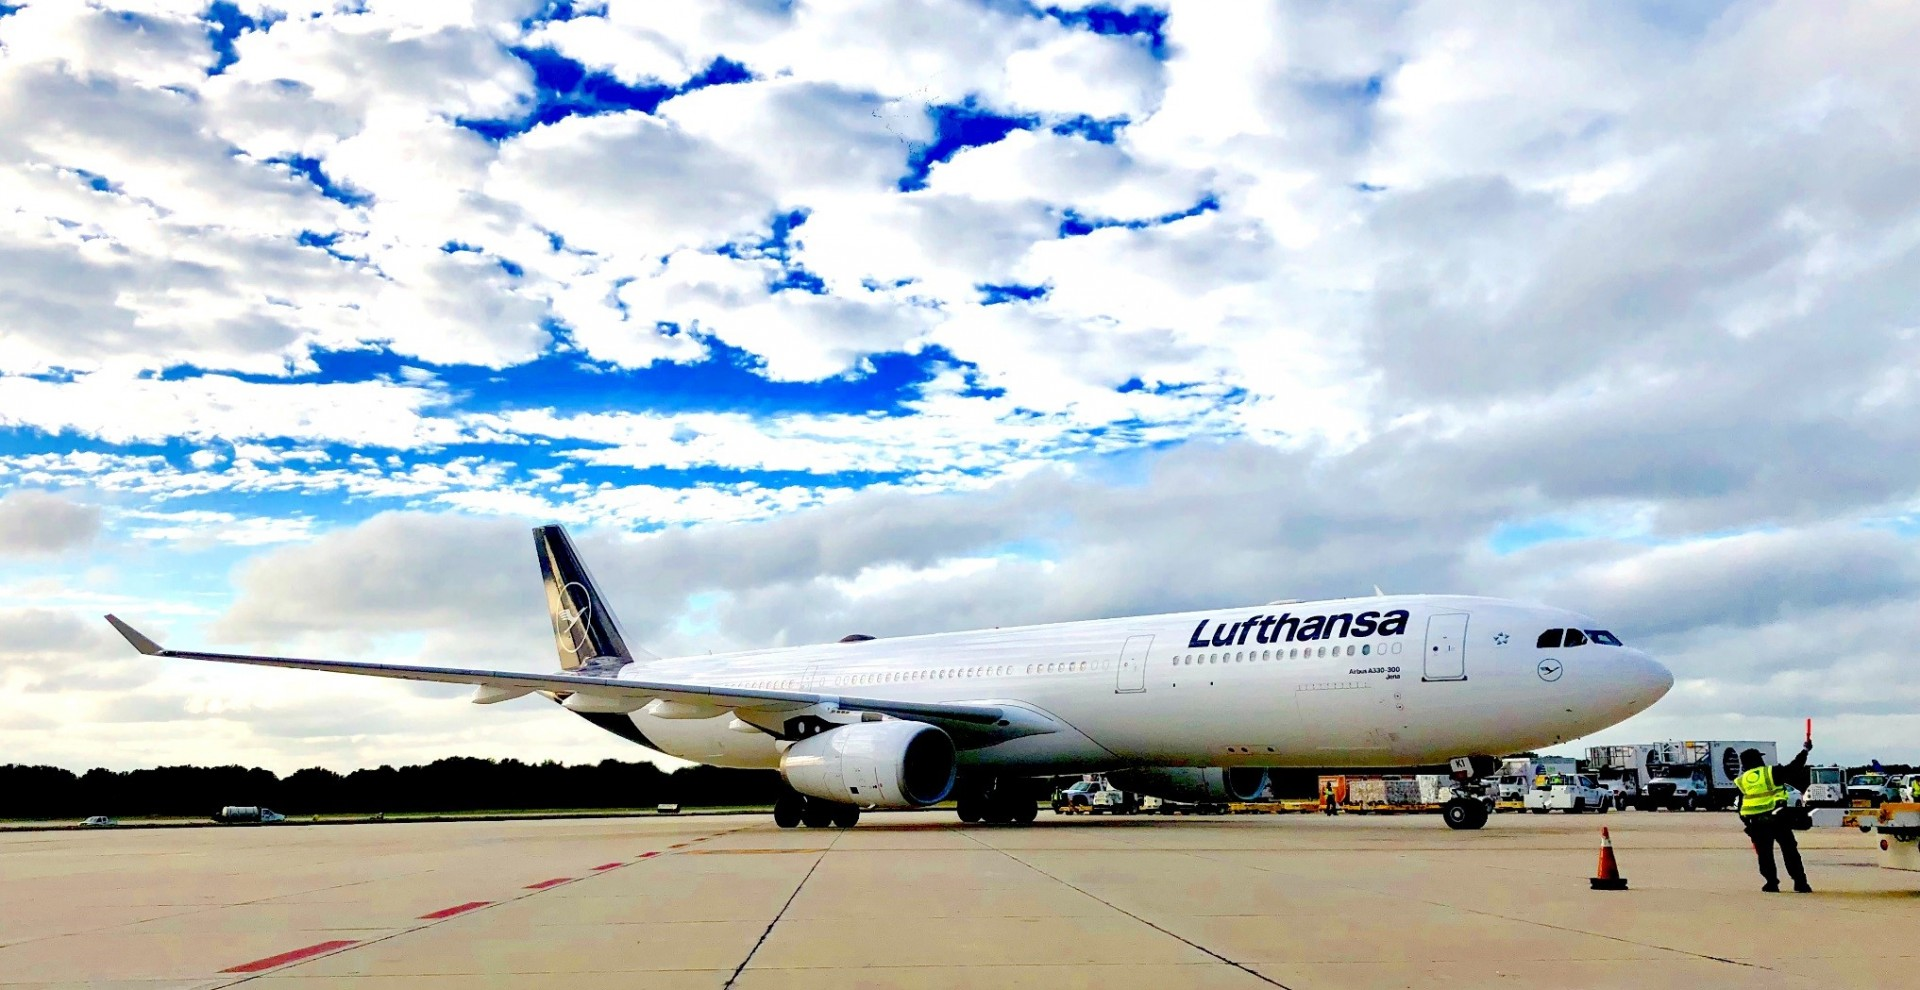 Lufthansa on the airfield